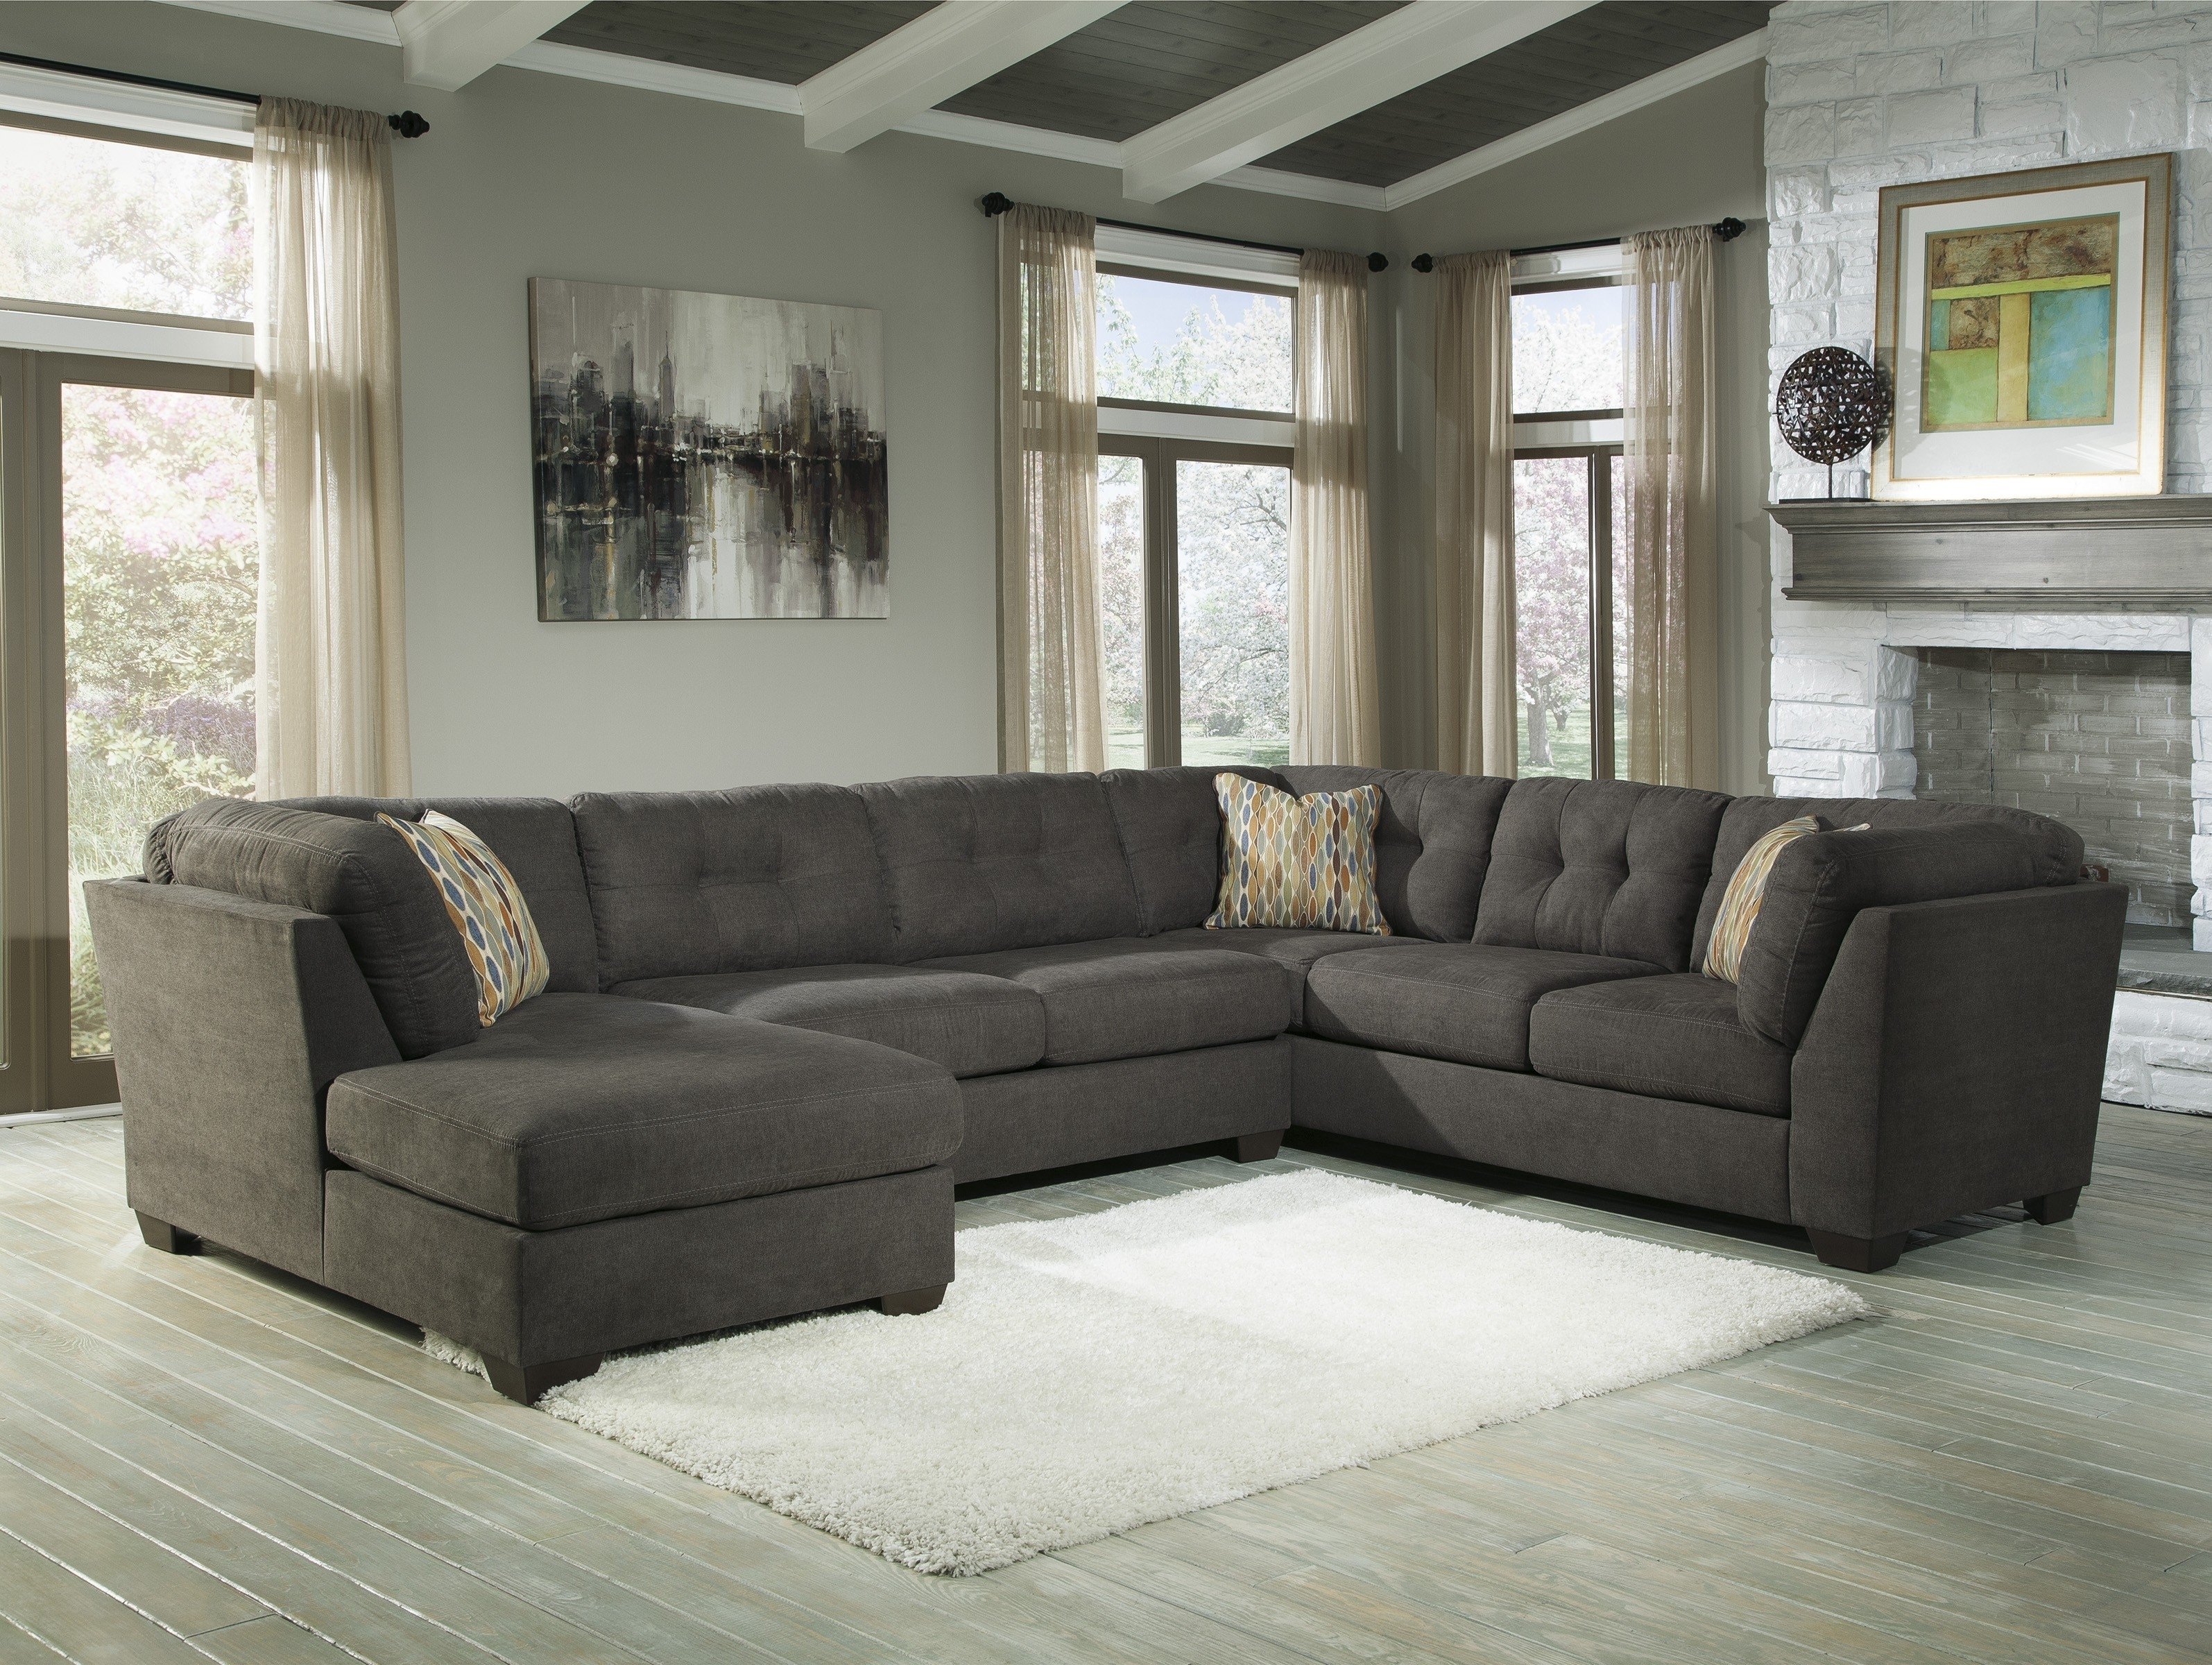 3 Piece Sectional Sofa Dimensions | Baci Living Room Throughout Malbry Point 3 Piece Sectionals With Raf Chaise (Photo 21 of 25)